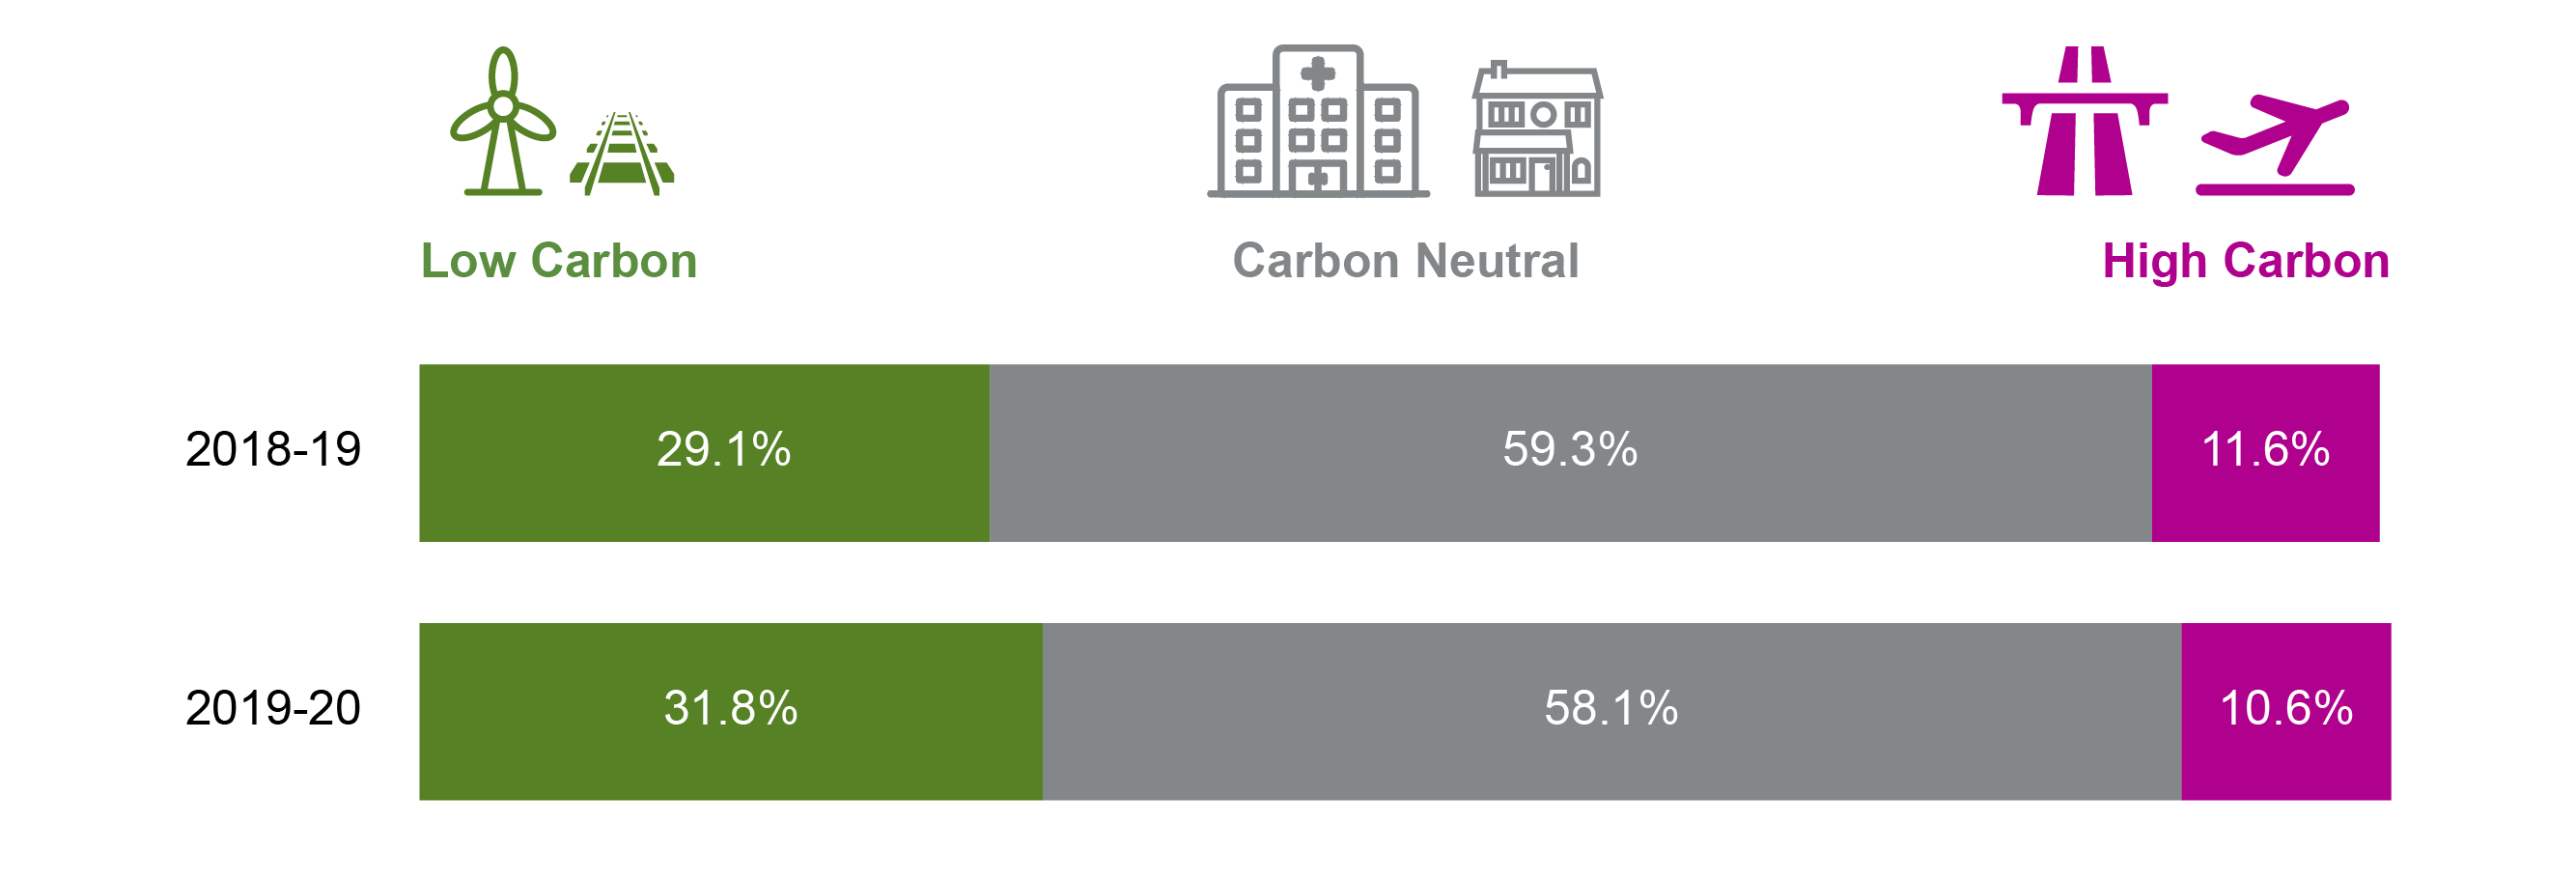 bar graphs showing the proportions of high, neutral or low carbon spend in financial years 2018-19 and 2019-20